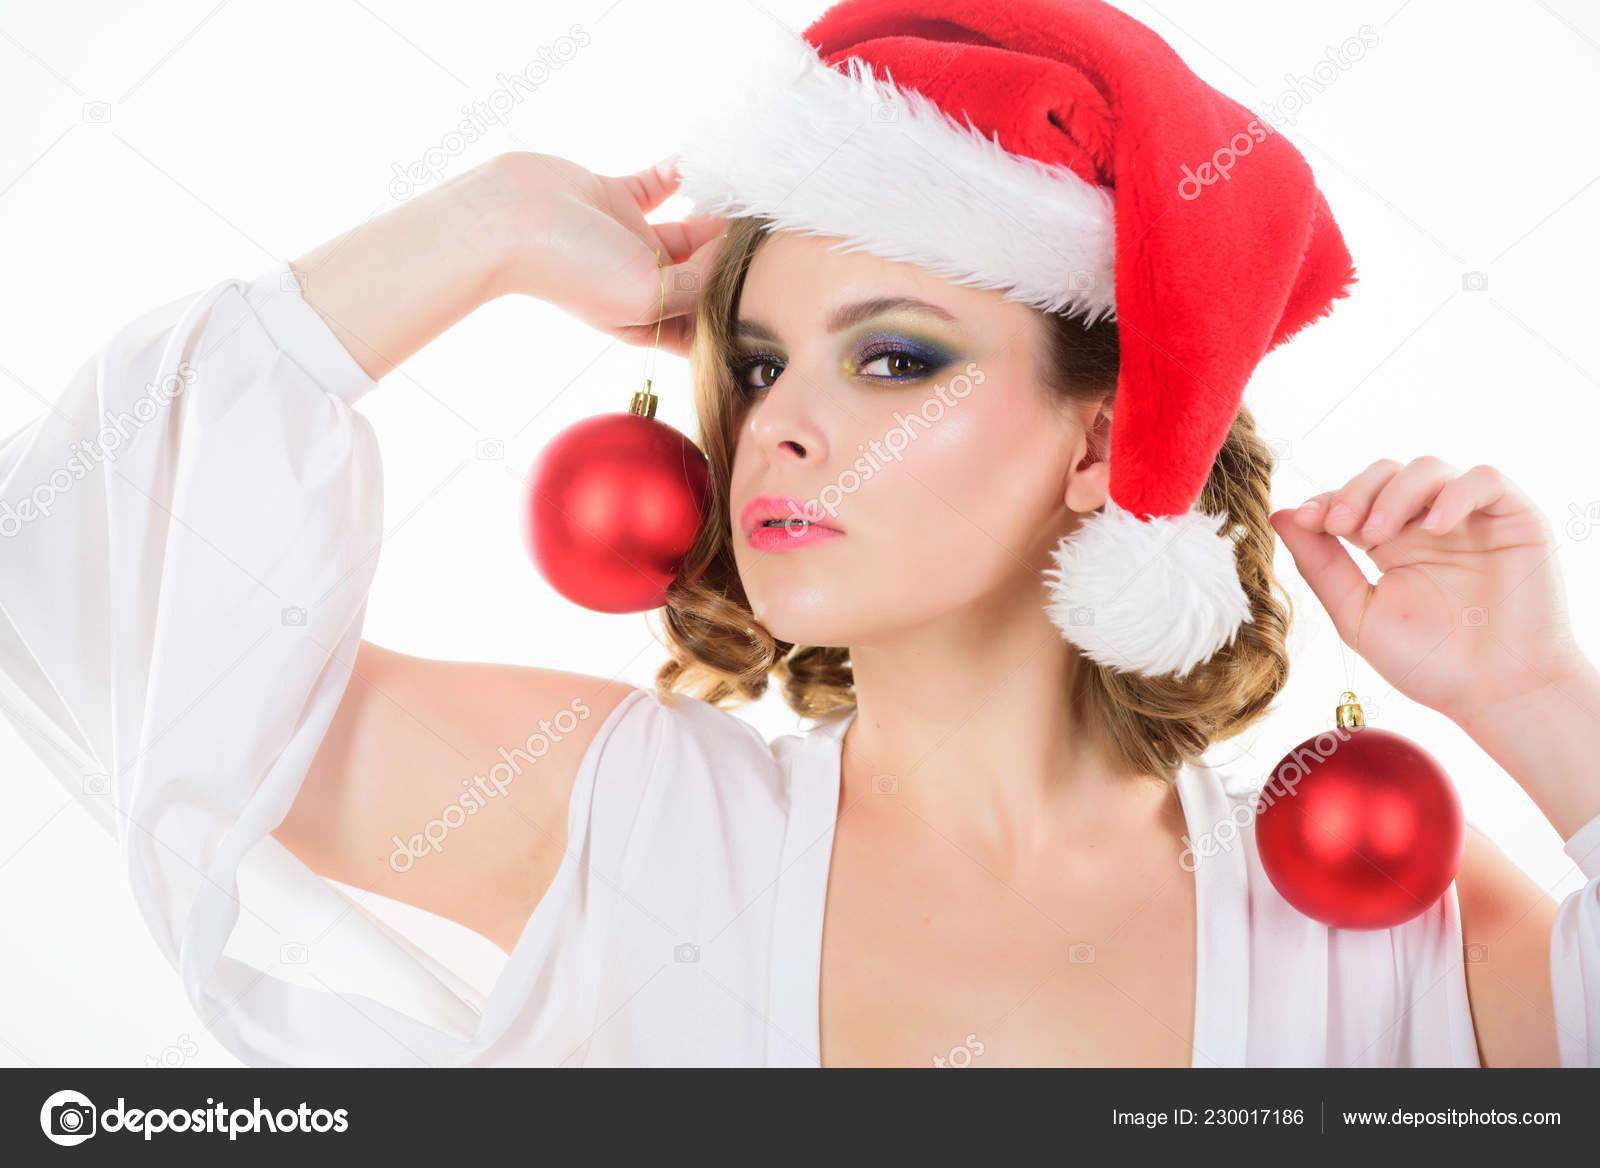 Prepare For Christmas Makeup Idea For Corporate Party Girl With Makeup And Hairstyle Ready To Celebrate